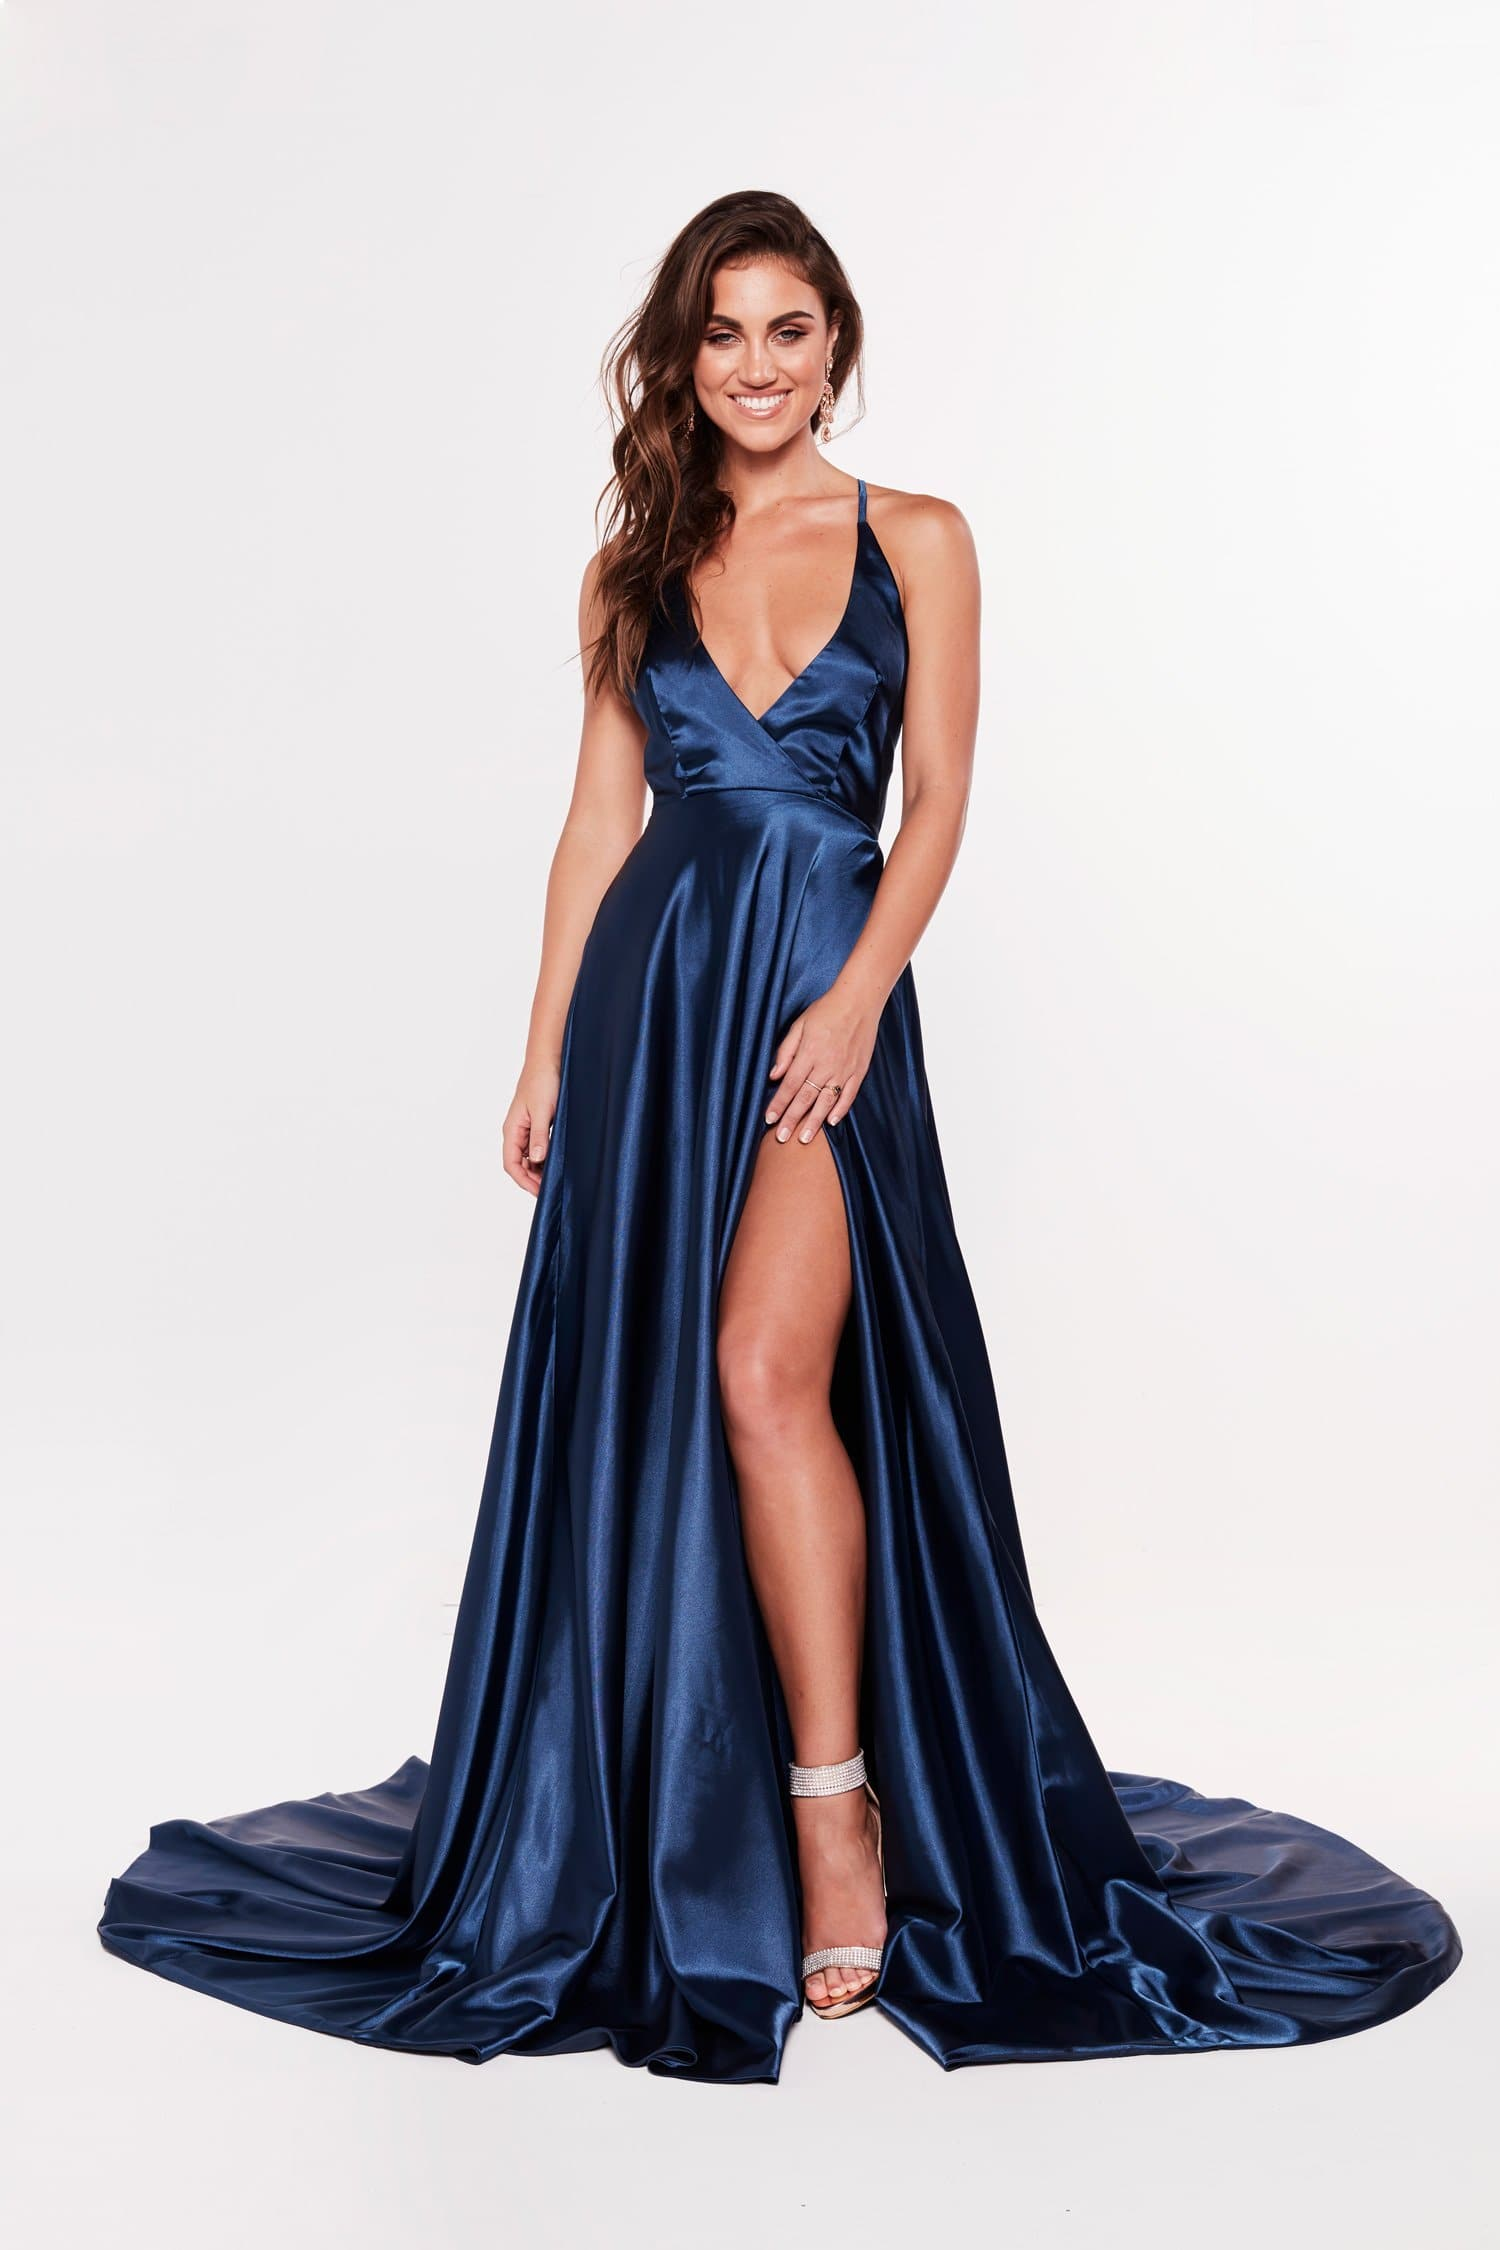 A&N Dimah - Satin Navy Gown With Front Slit and Plunge Neckline